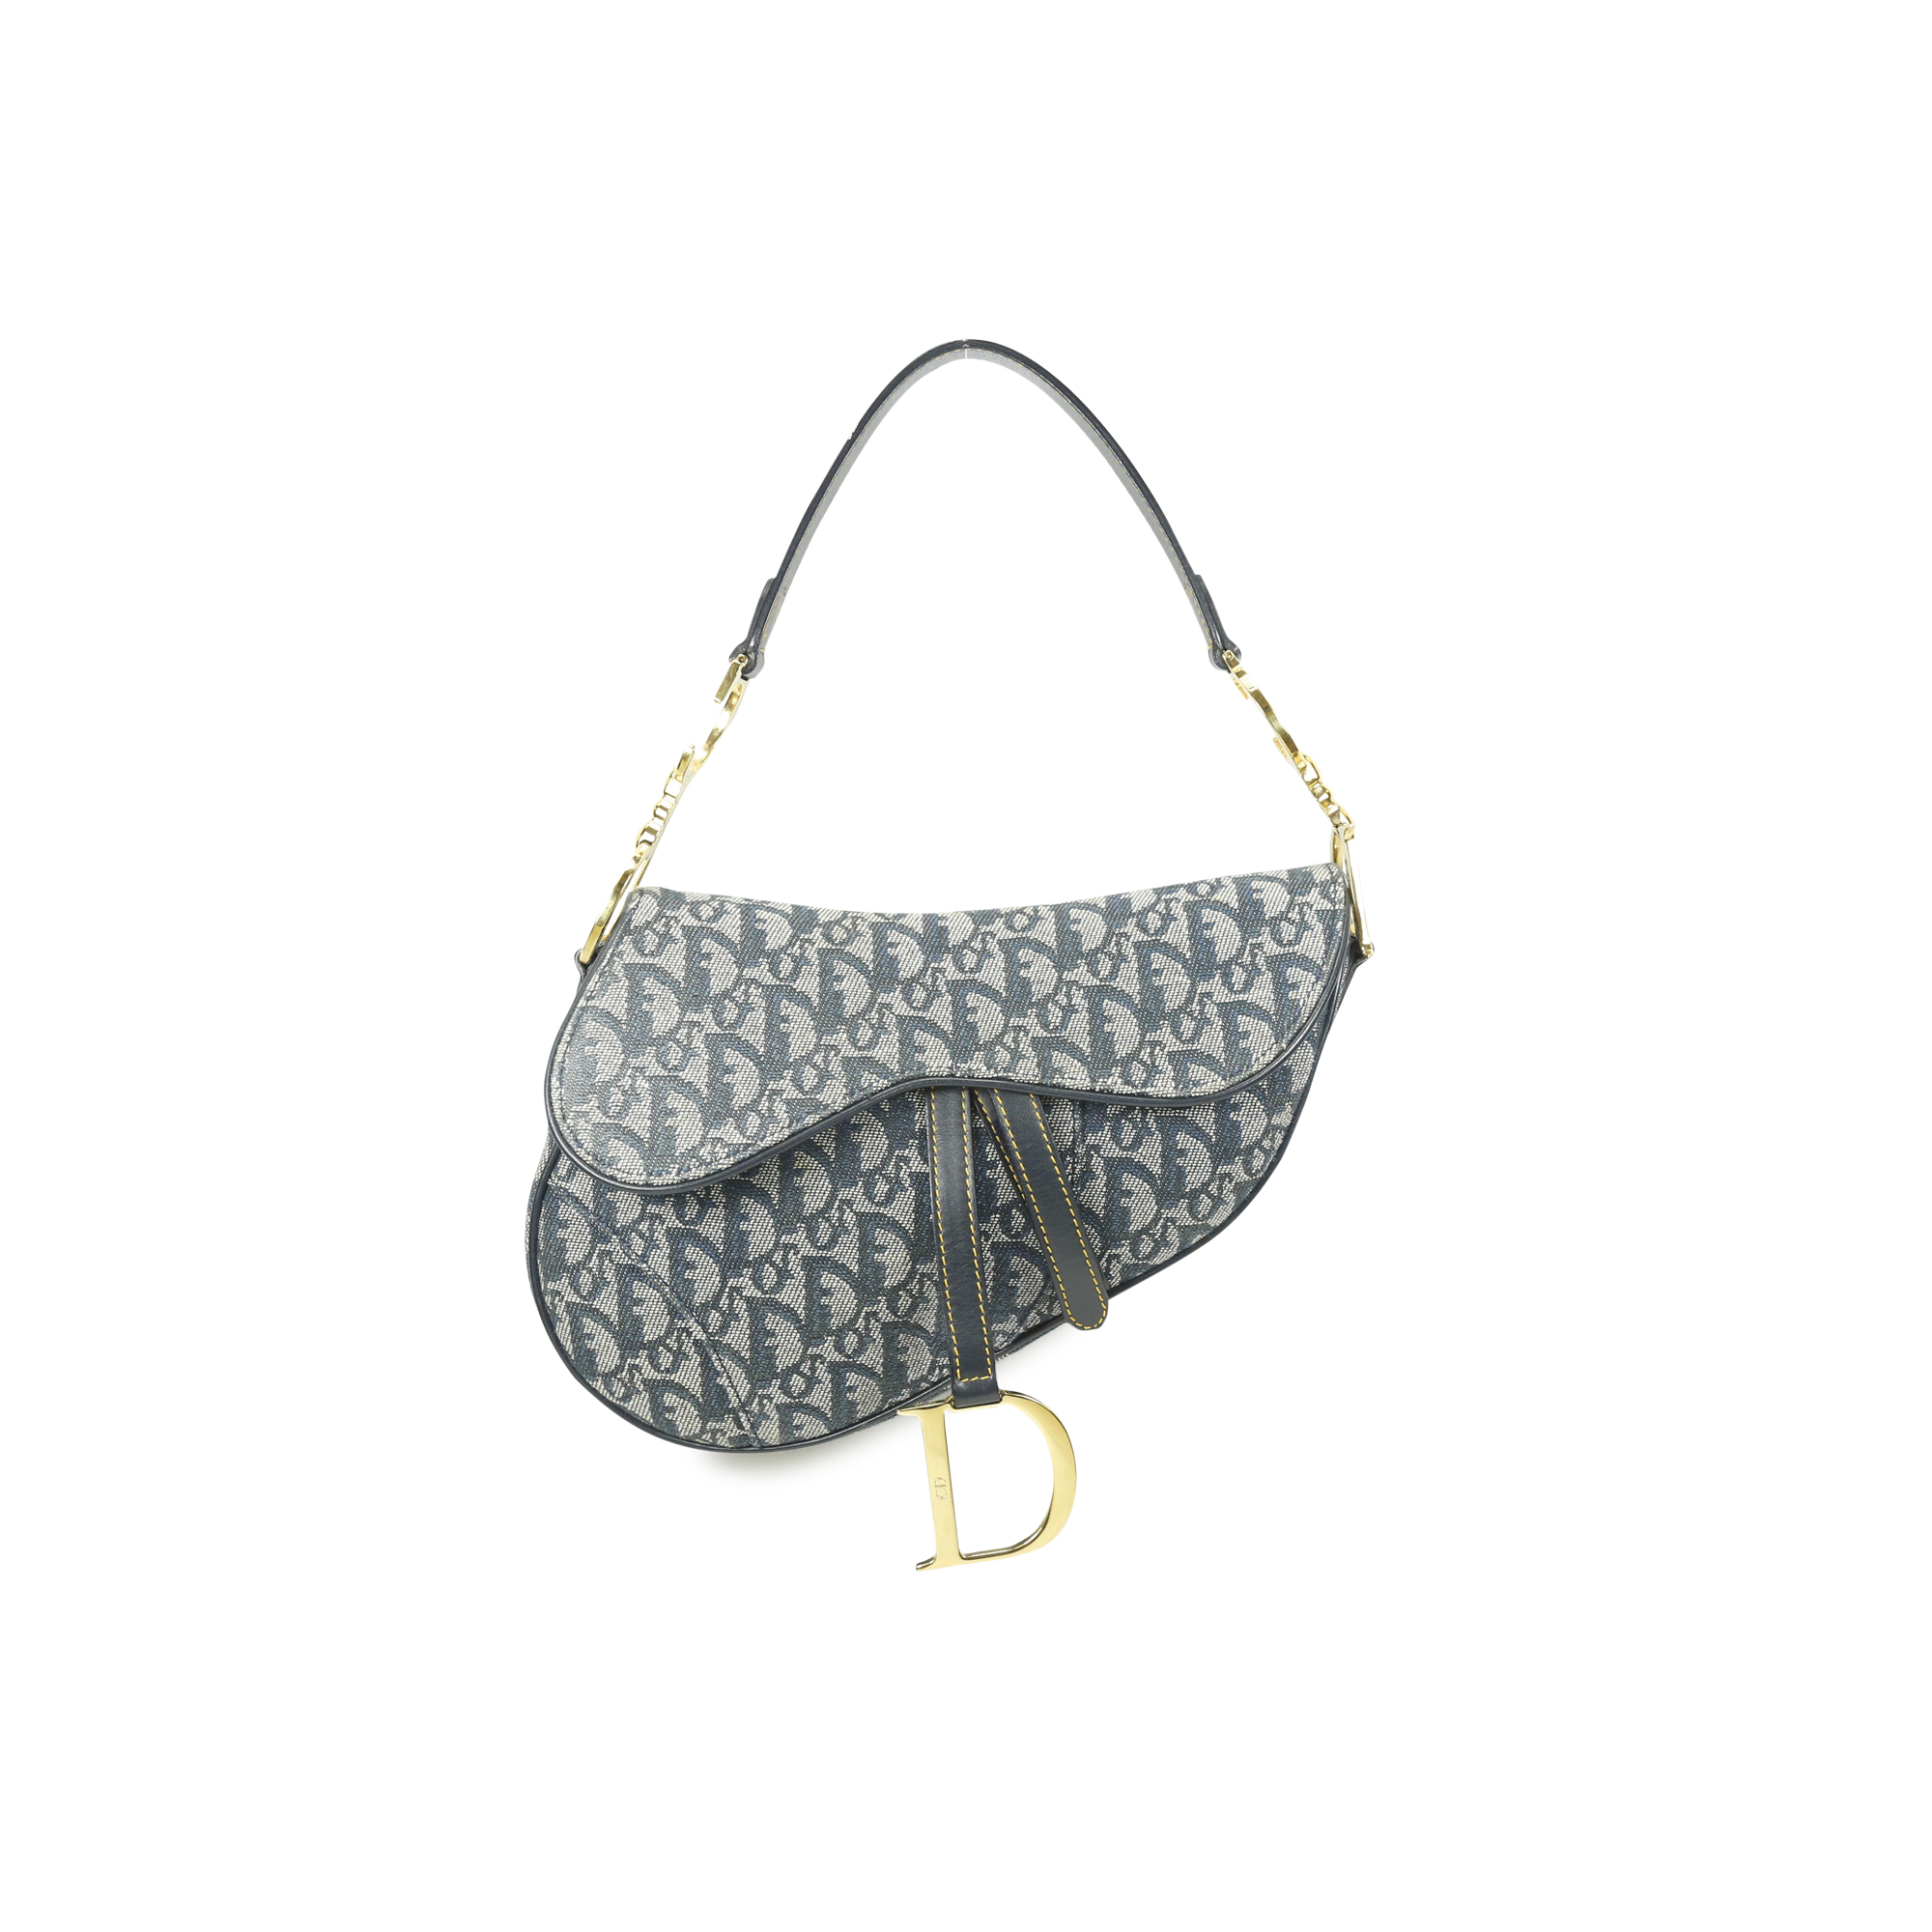 3d4e5032424d Authentic Second Hand Christian Dior Saddle Bag (PSS-034-00001 ...